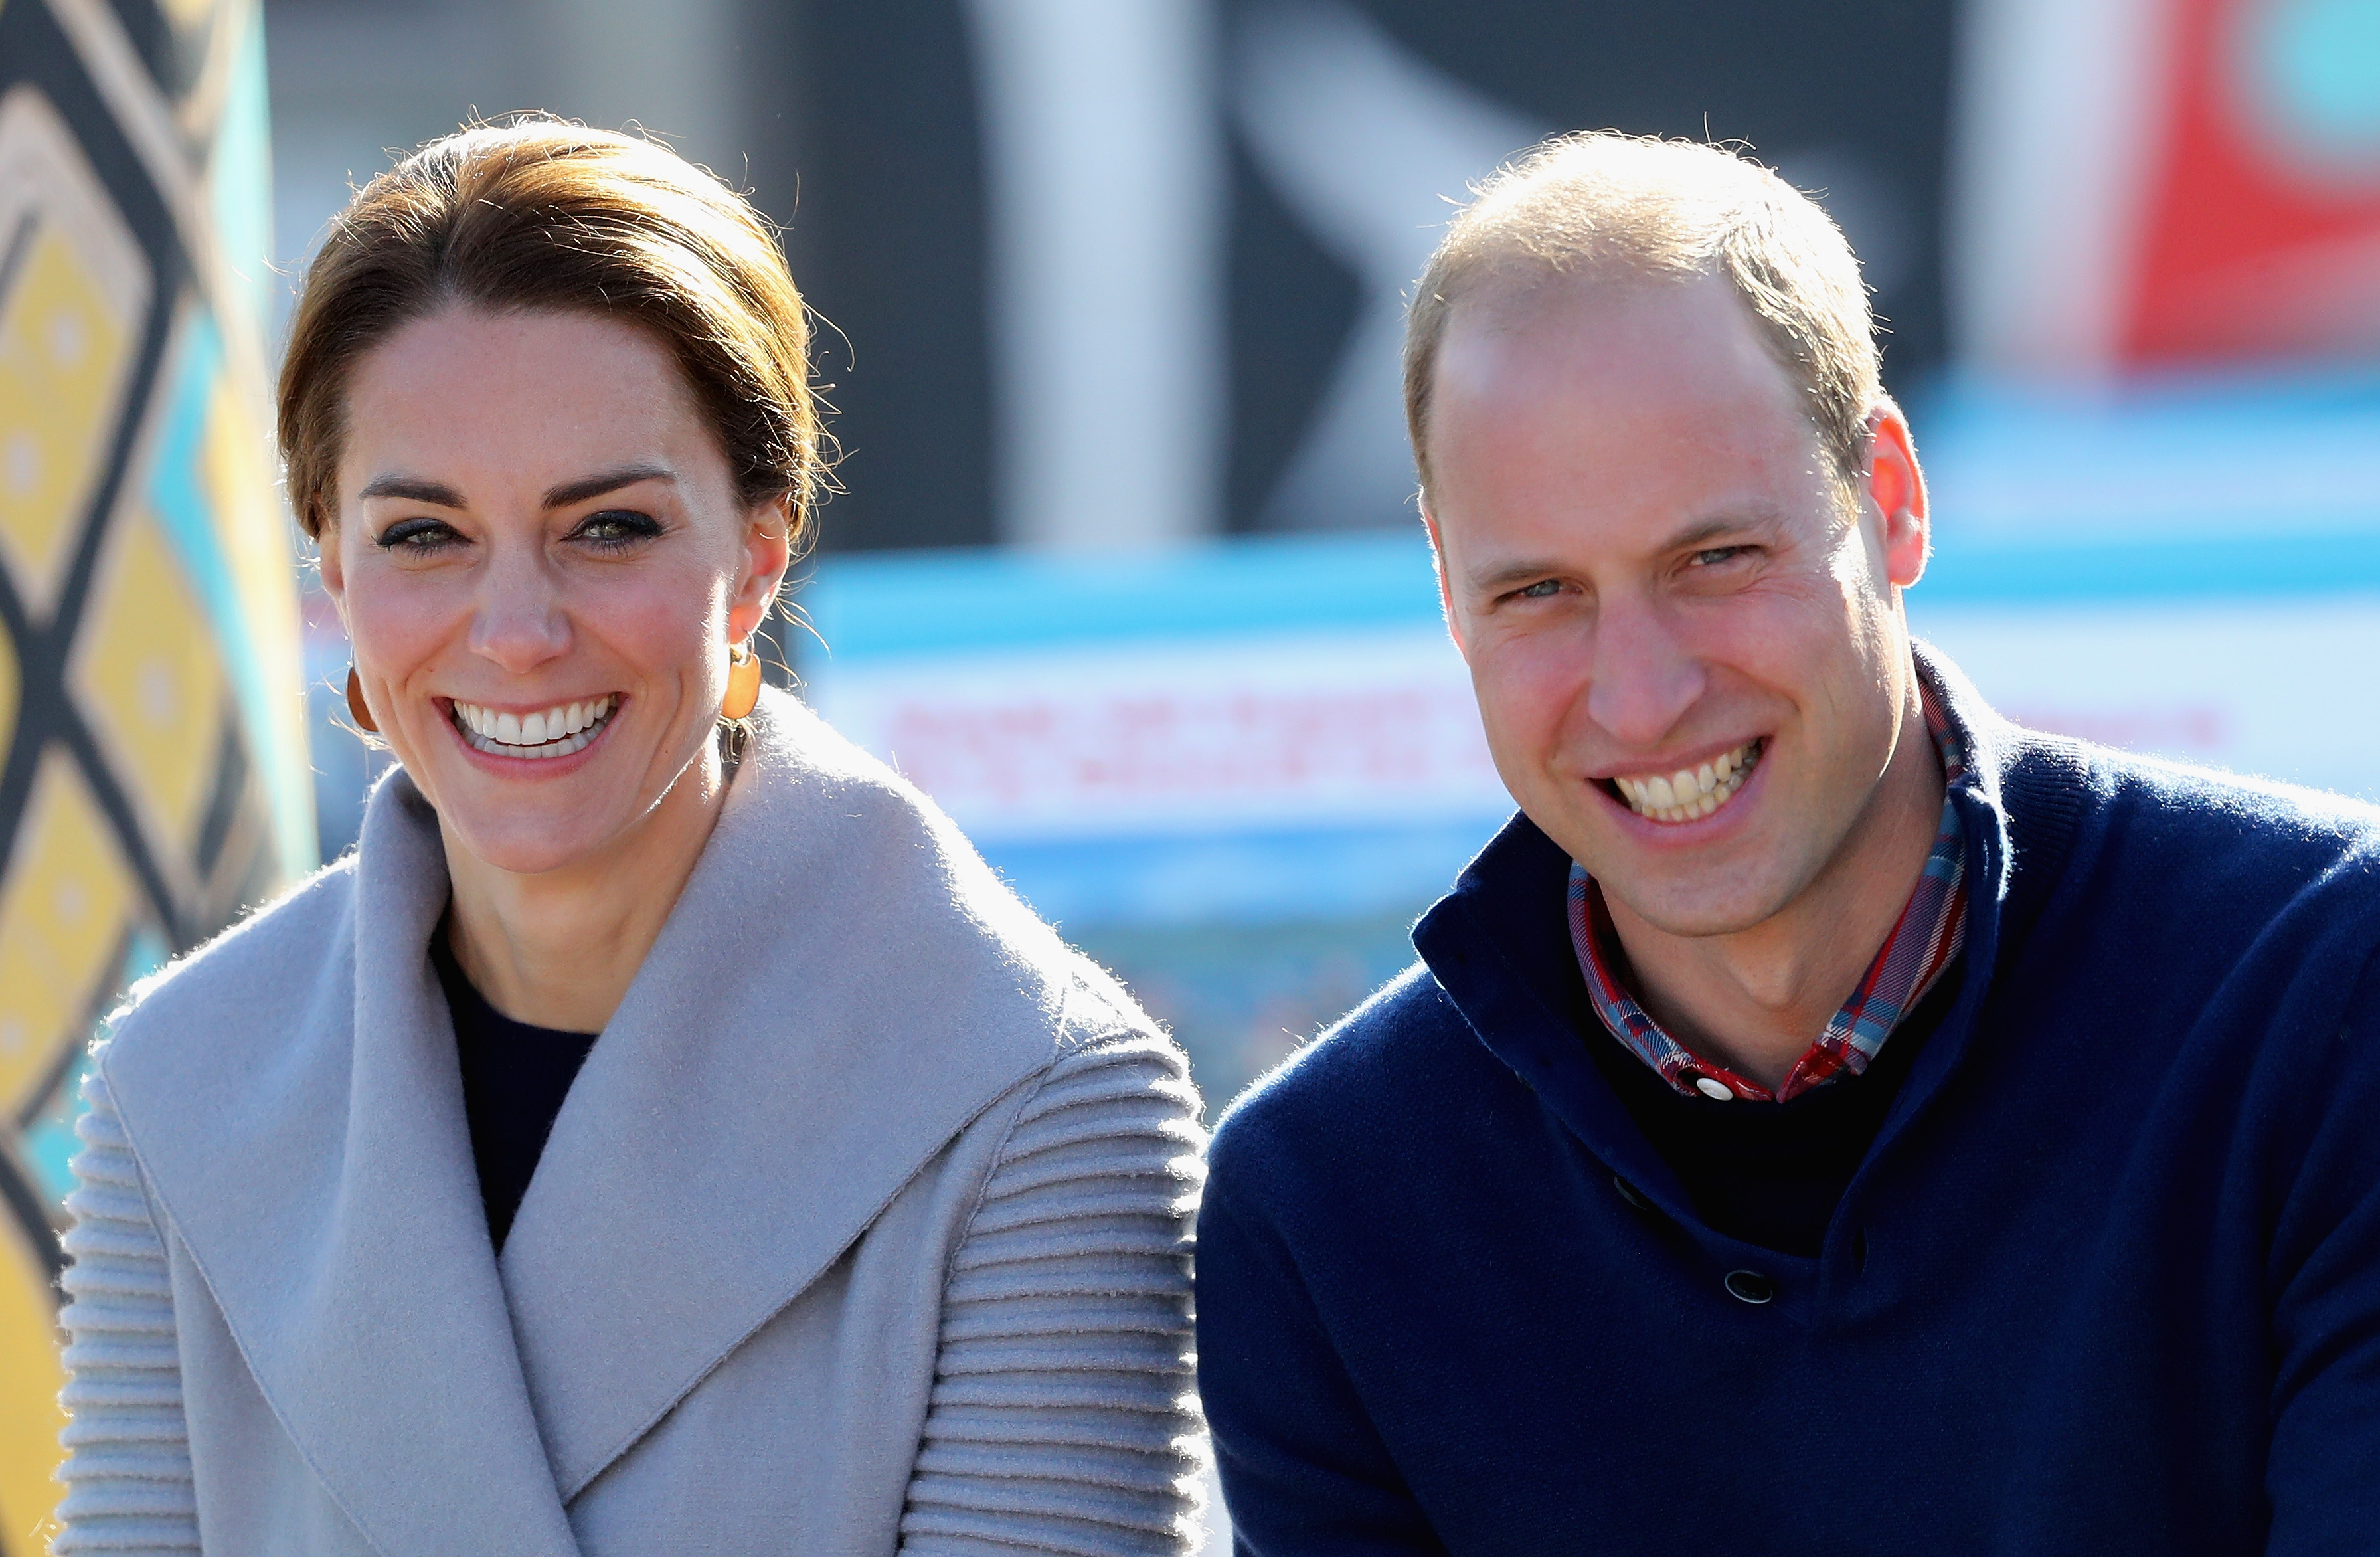 Prince William and Kate Are Planning Family Celebrations at Anmer Hall This Month